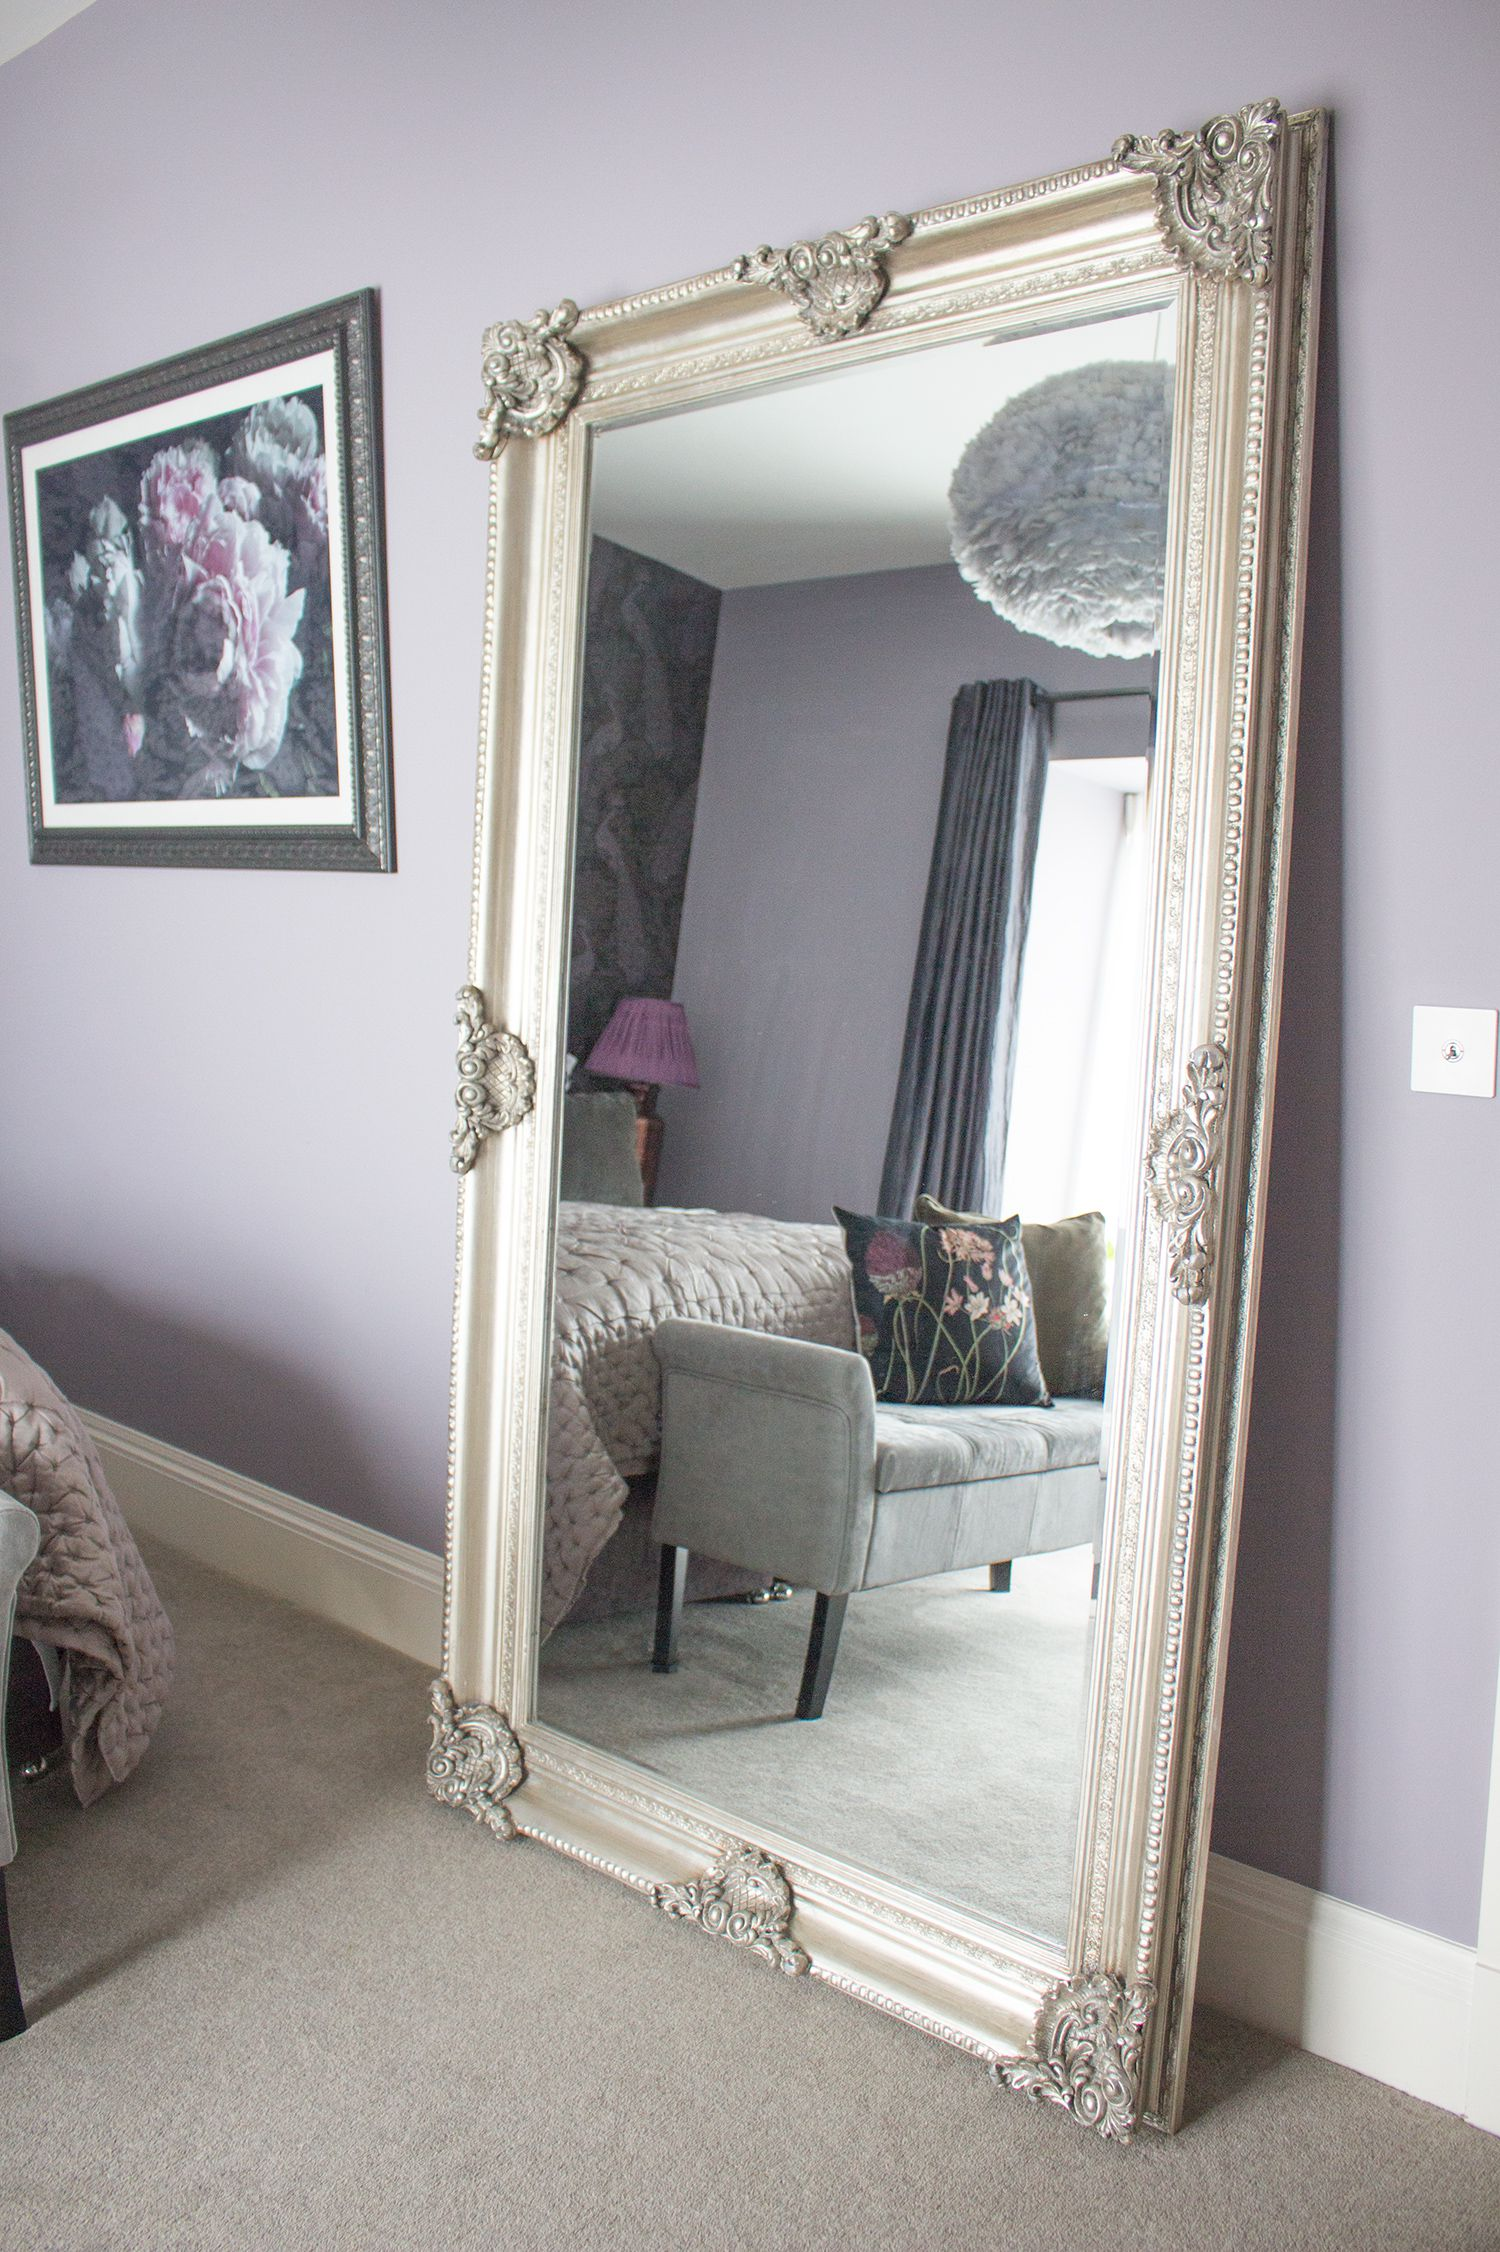 A photo of the large ornate silver floor standing mirror against the lilac walls.